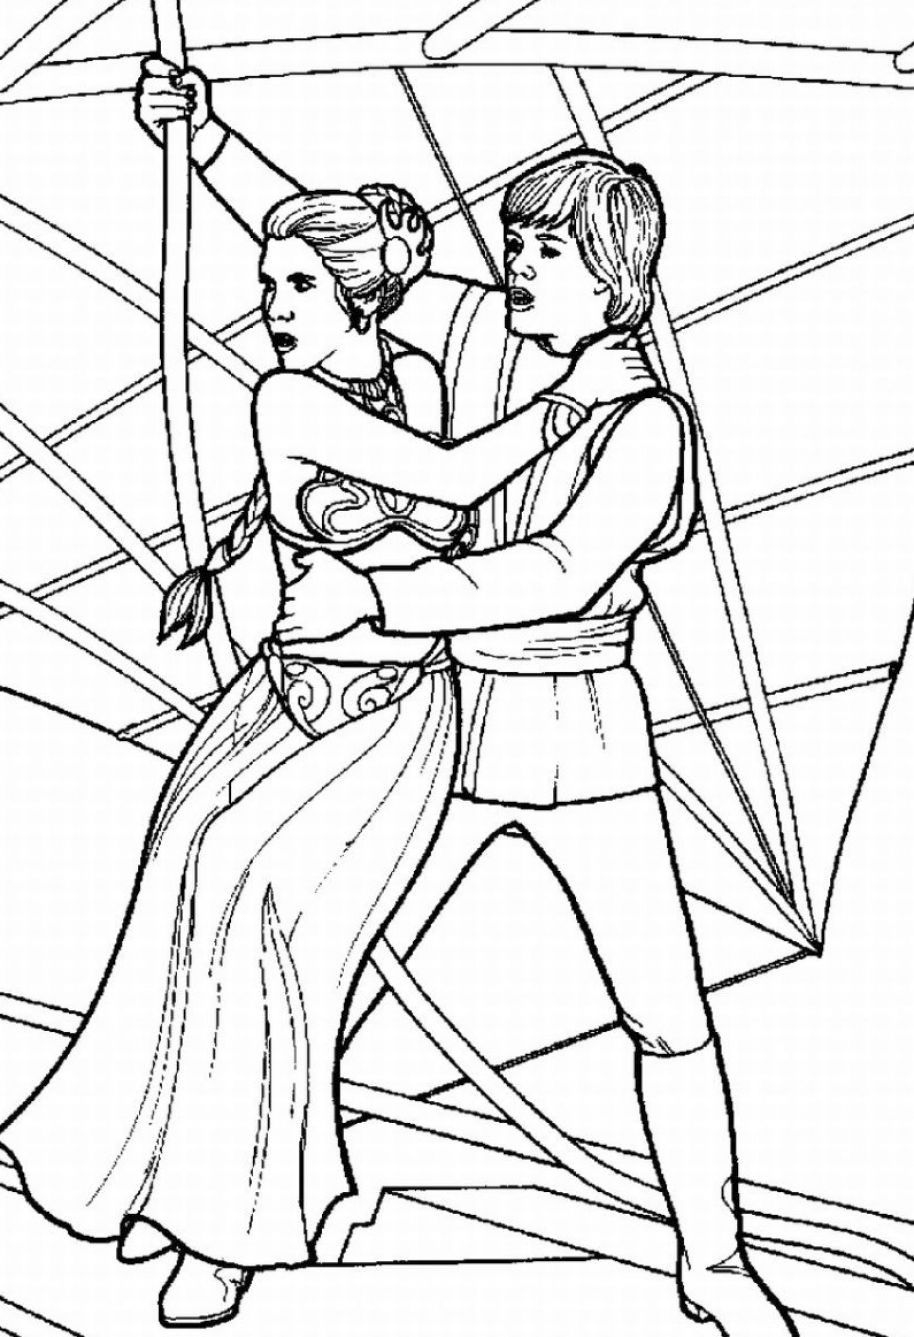 remarkable Star Wars Coloring Pages coloringkidsorg Coloring Kids